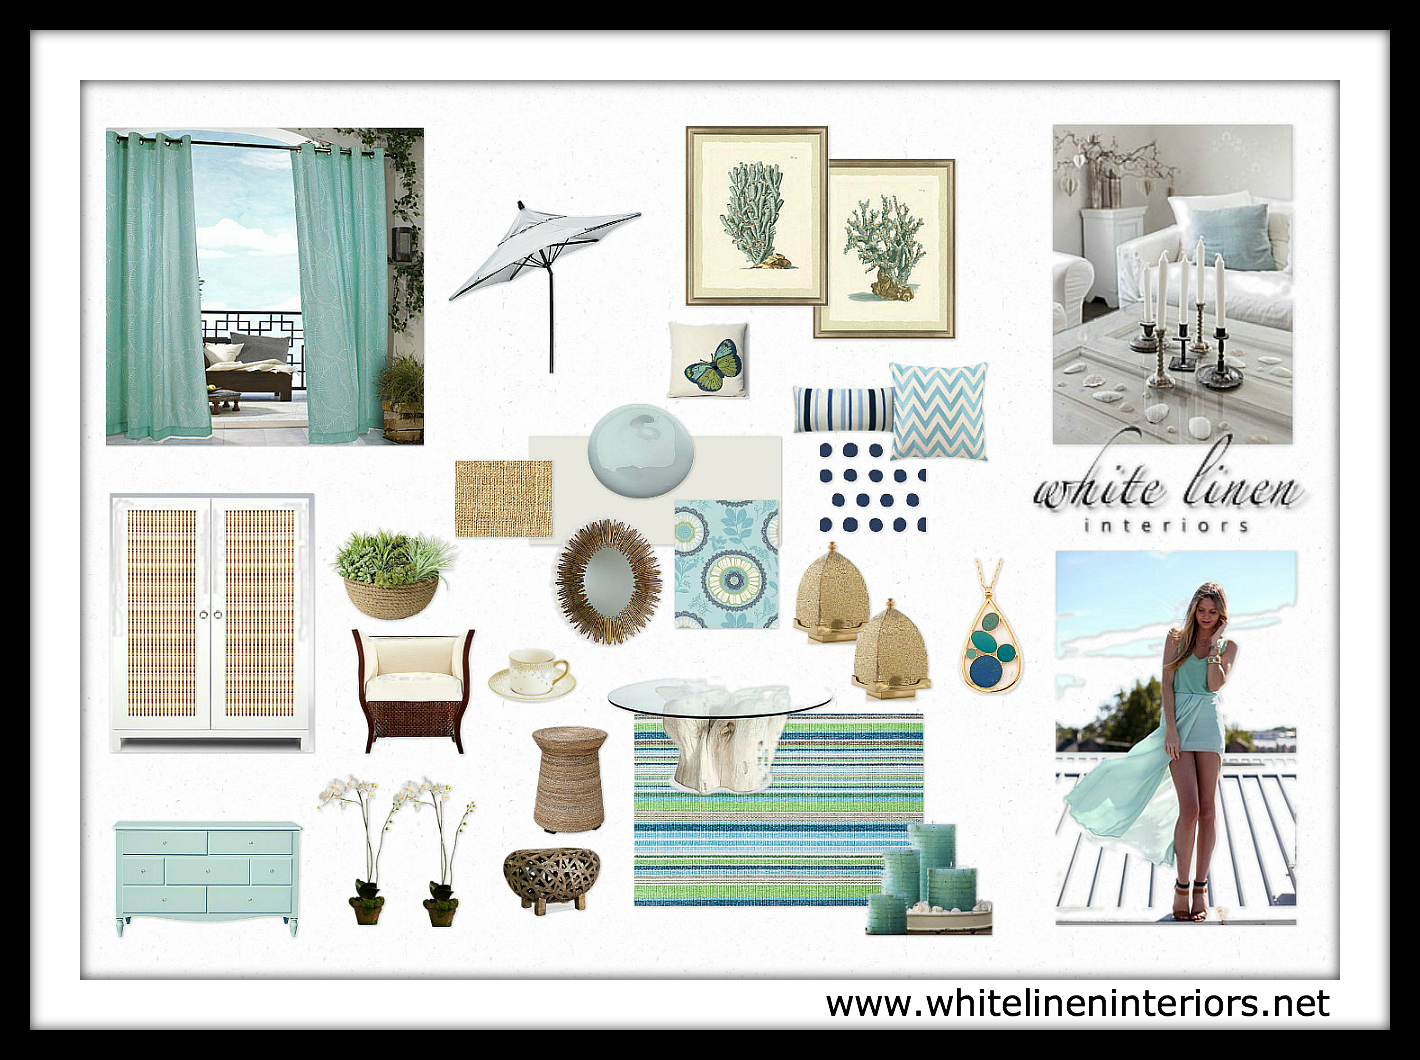 Color In Interior Design Concept gallery slides – white linen interiors